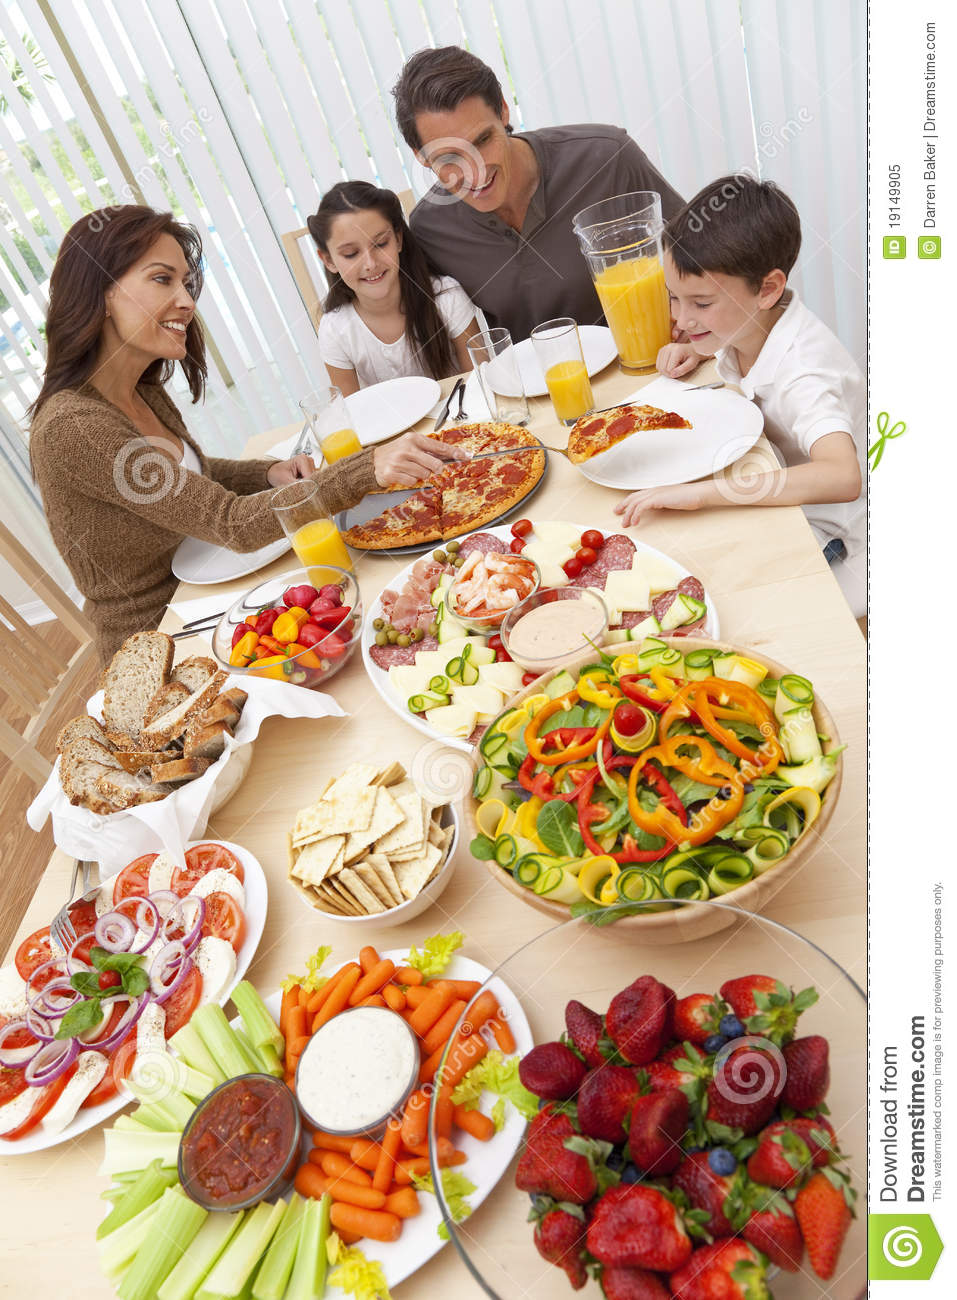 Family Eating Pizza & Salad At Dining Table